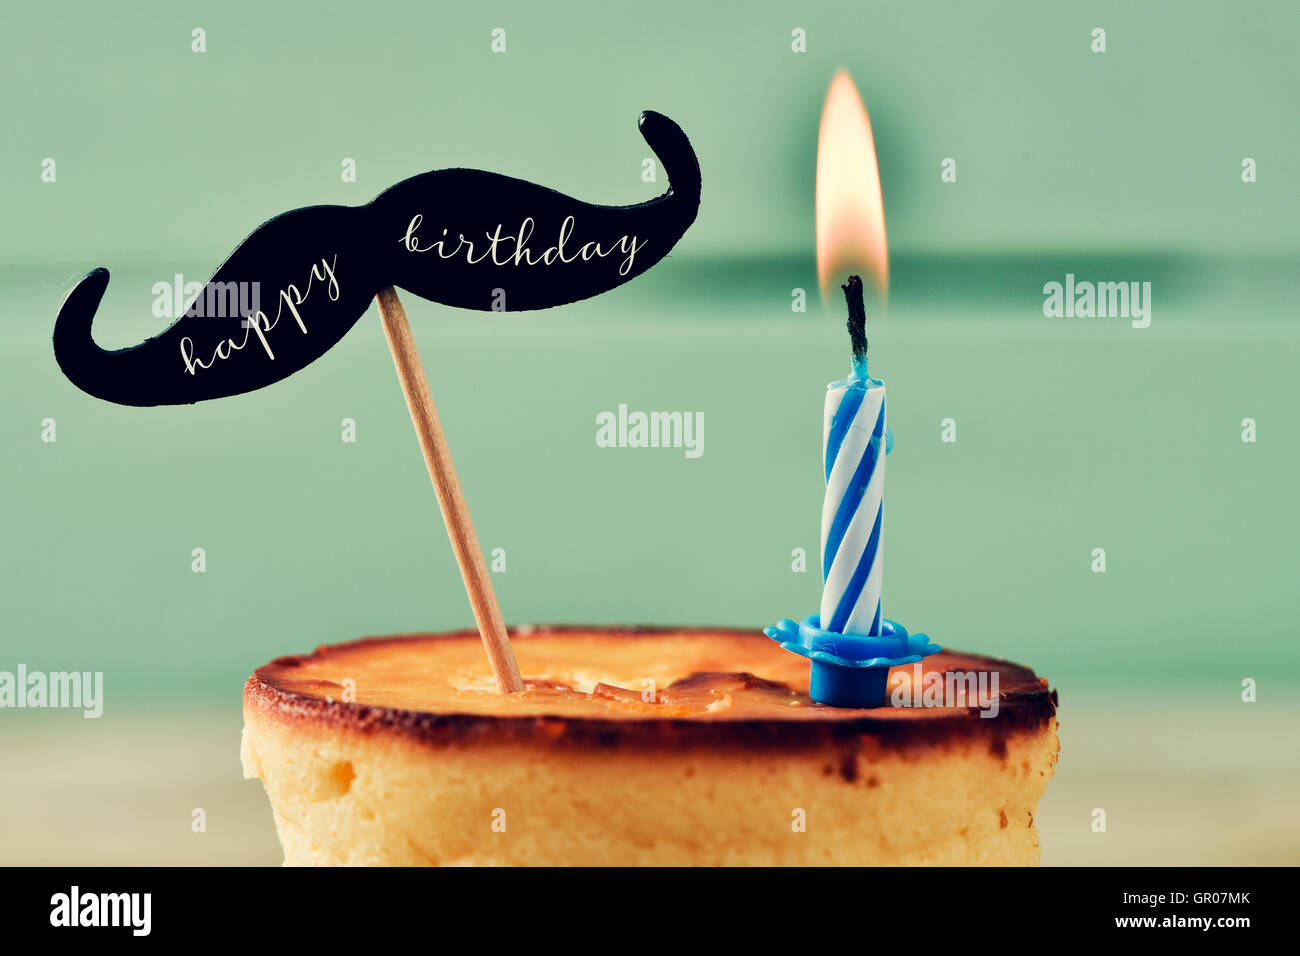 closeup of a cheesecake topped with a moustache with the text happy birthday written in it and attached to a stick, Stock Photo